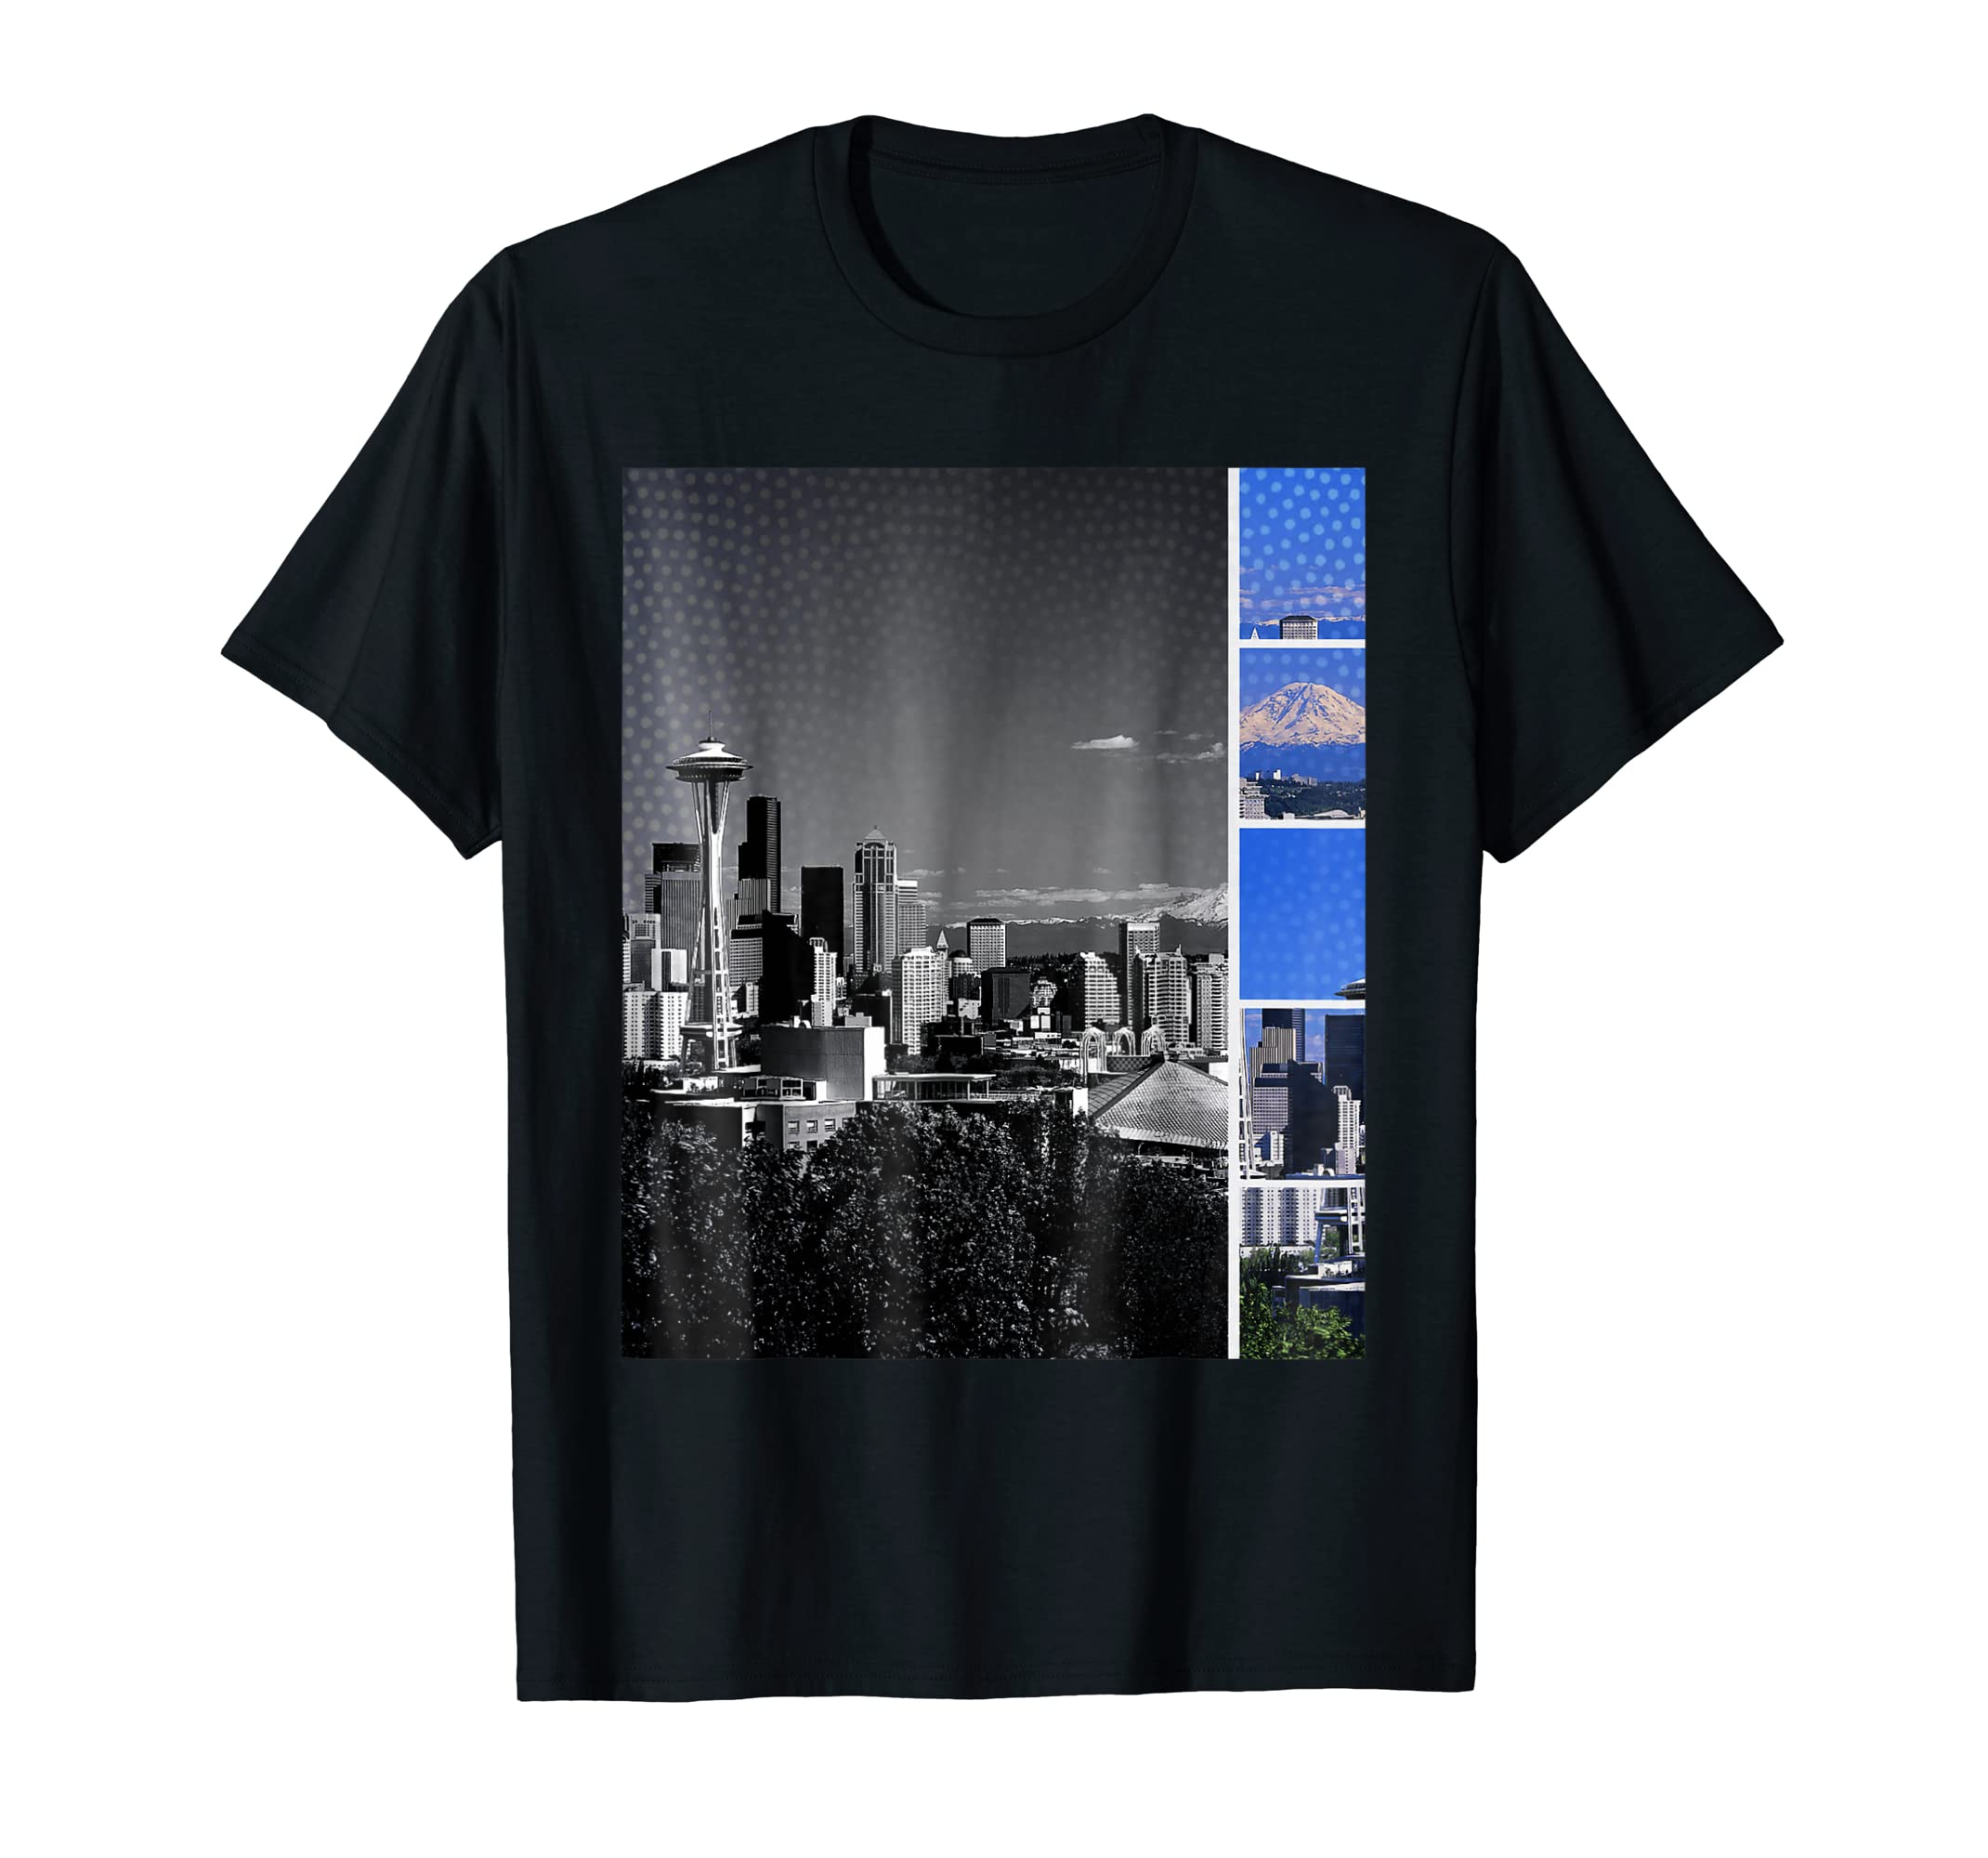 Downtown Seattle Skyline Shades of Grey and Blue T-Shirt  by stine1 on Amazon.com